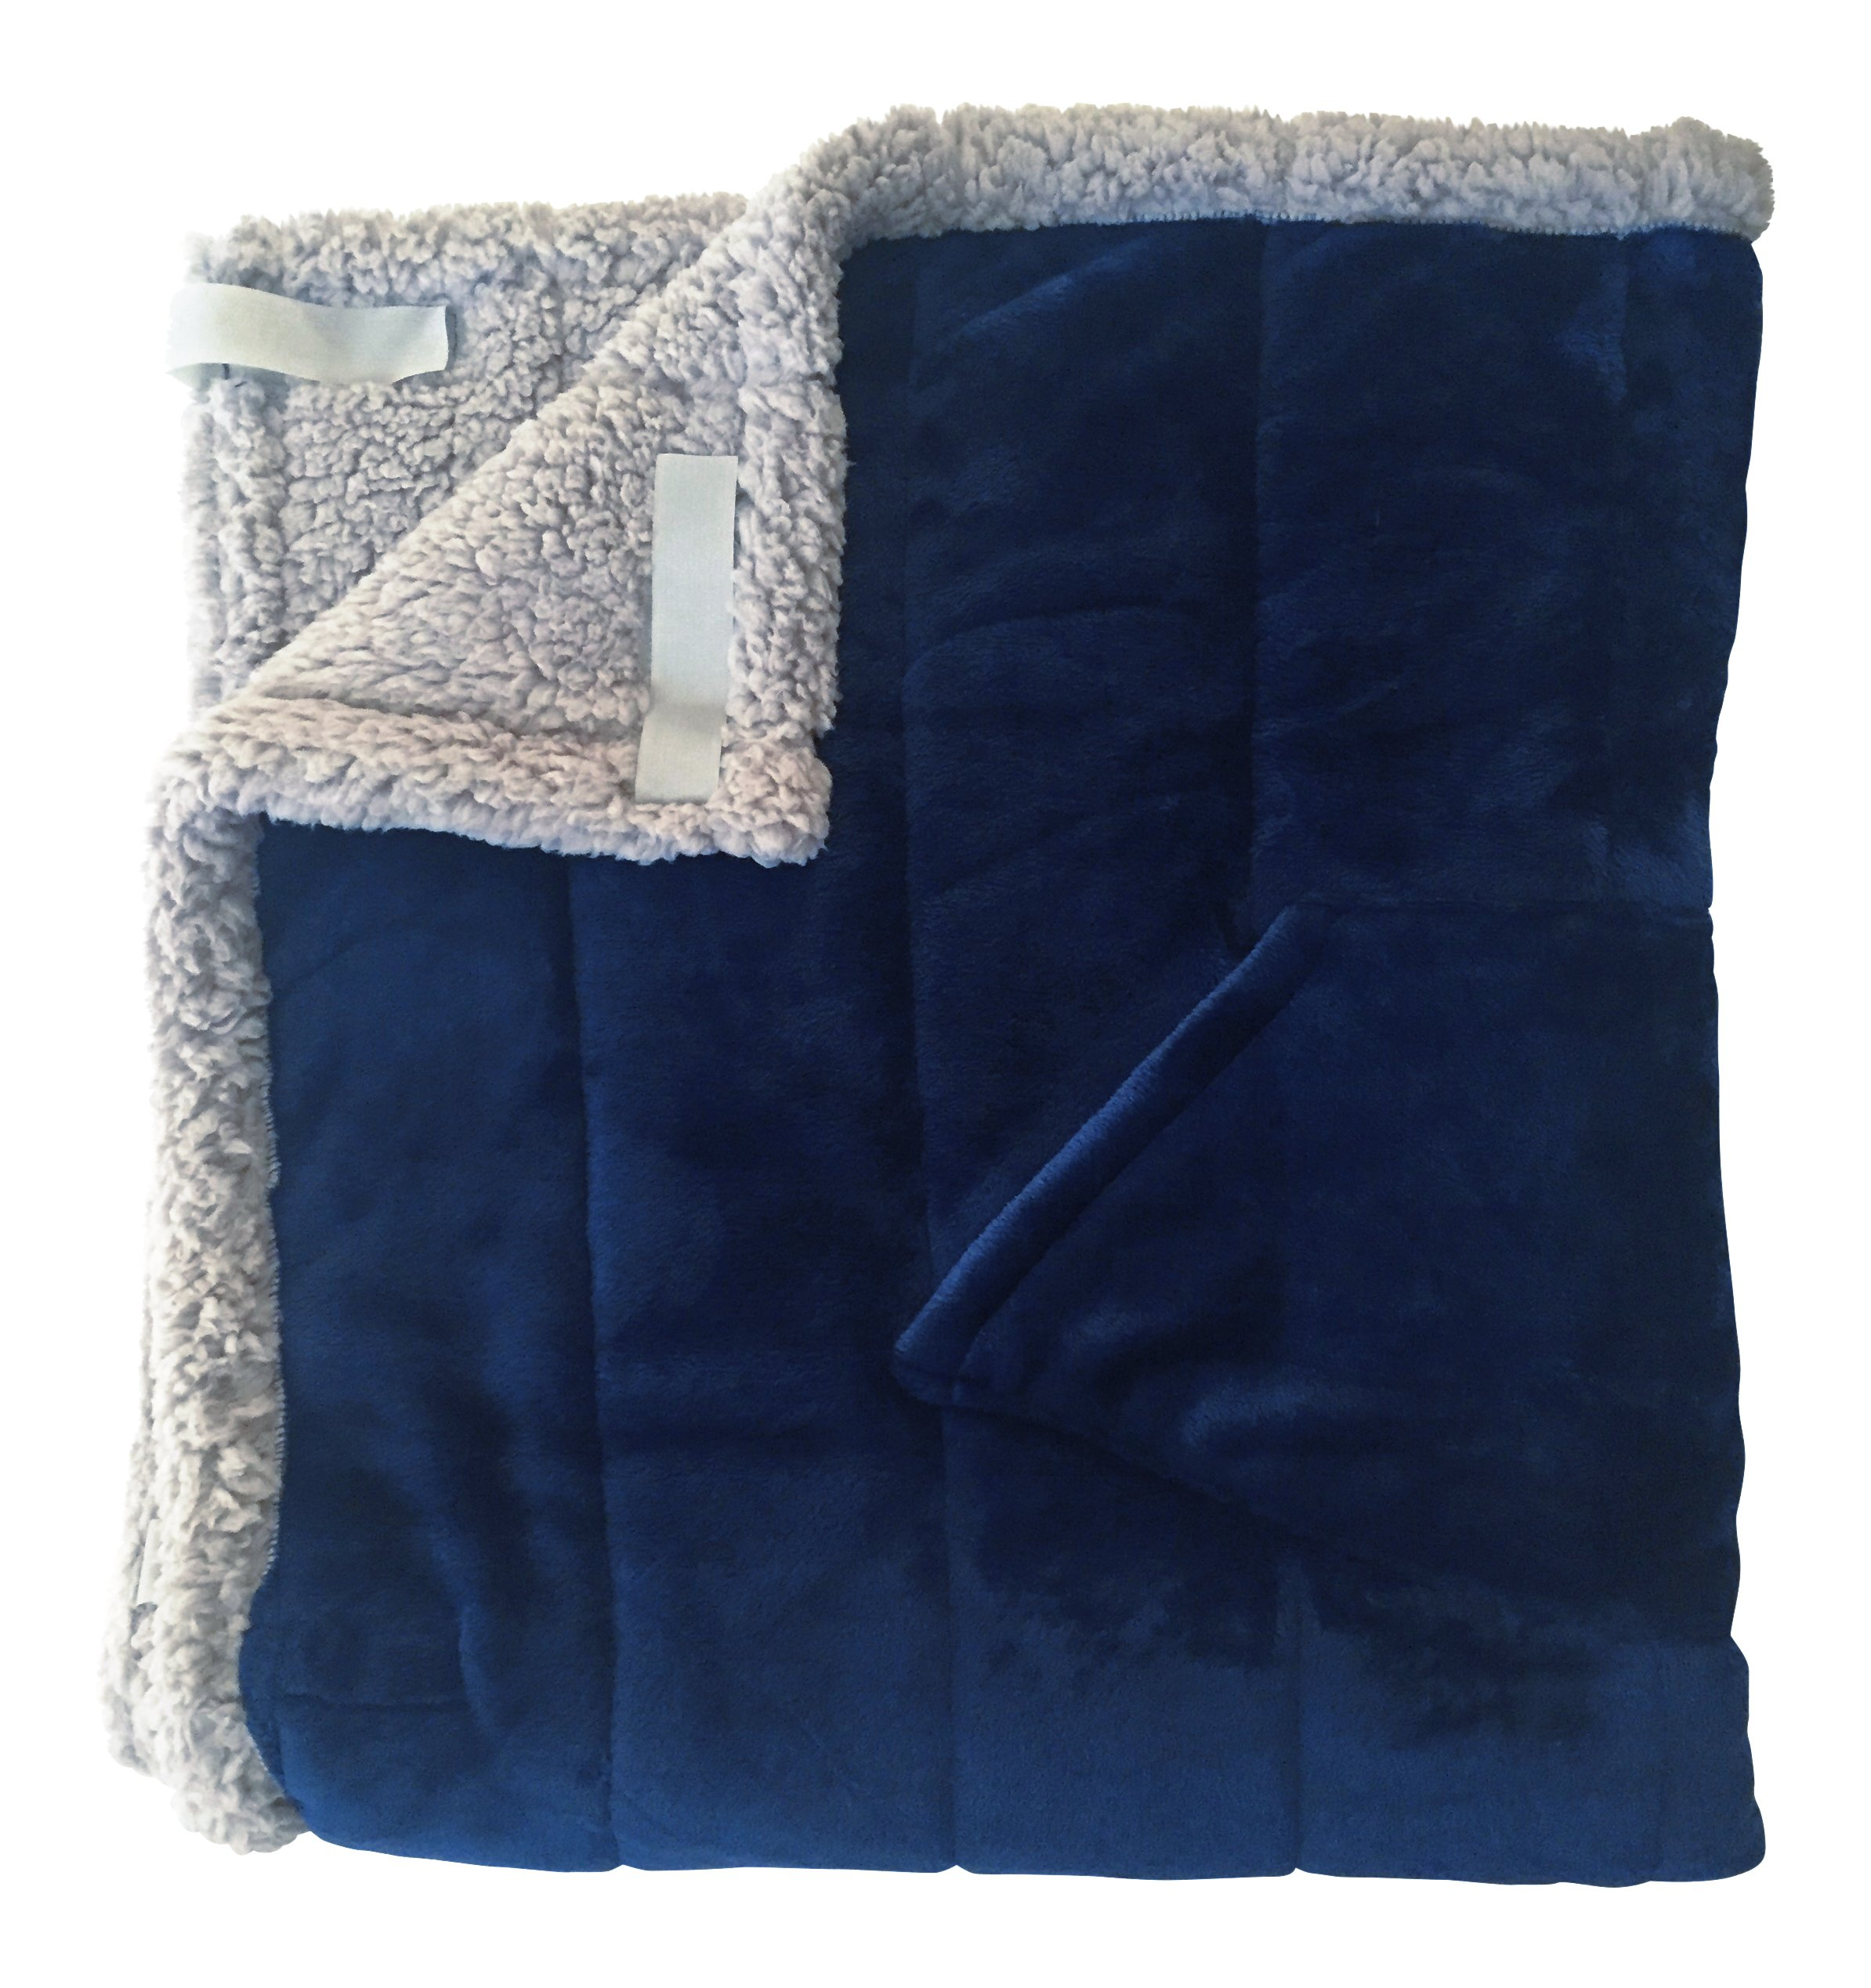 Granny Jo Products Heavyweight Wheelchair Blanket, Navy Face/Grey Back by Granny Jo Products